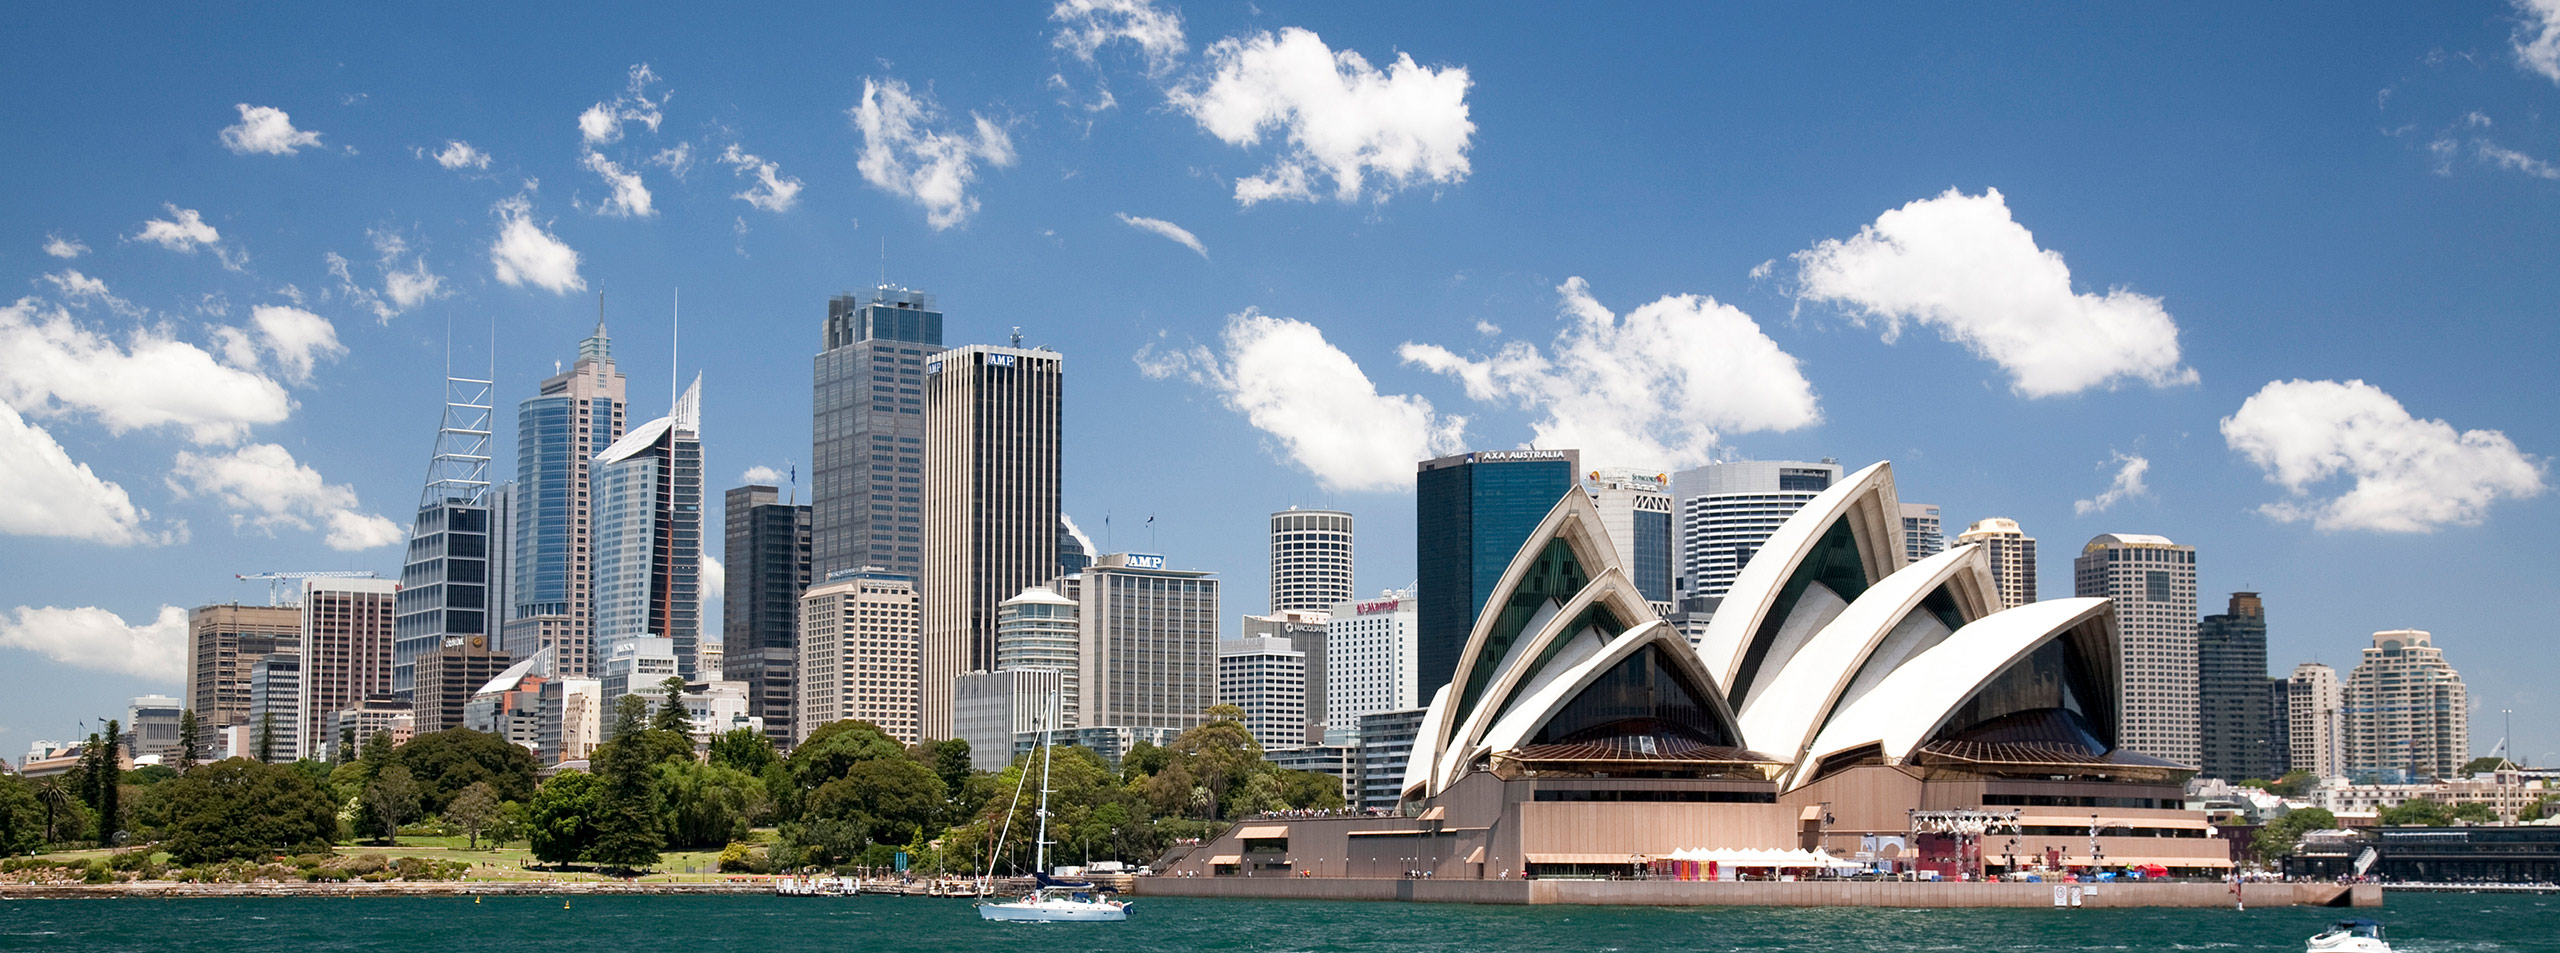 Opera House, Sydney Harbour